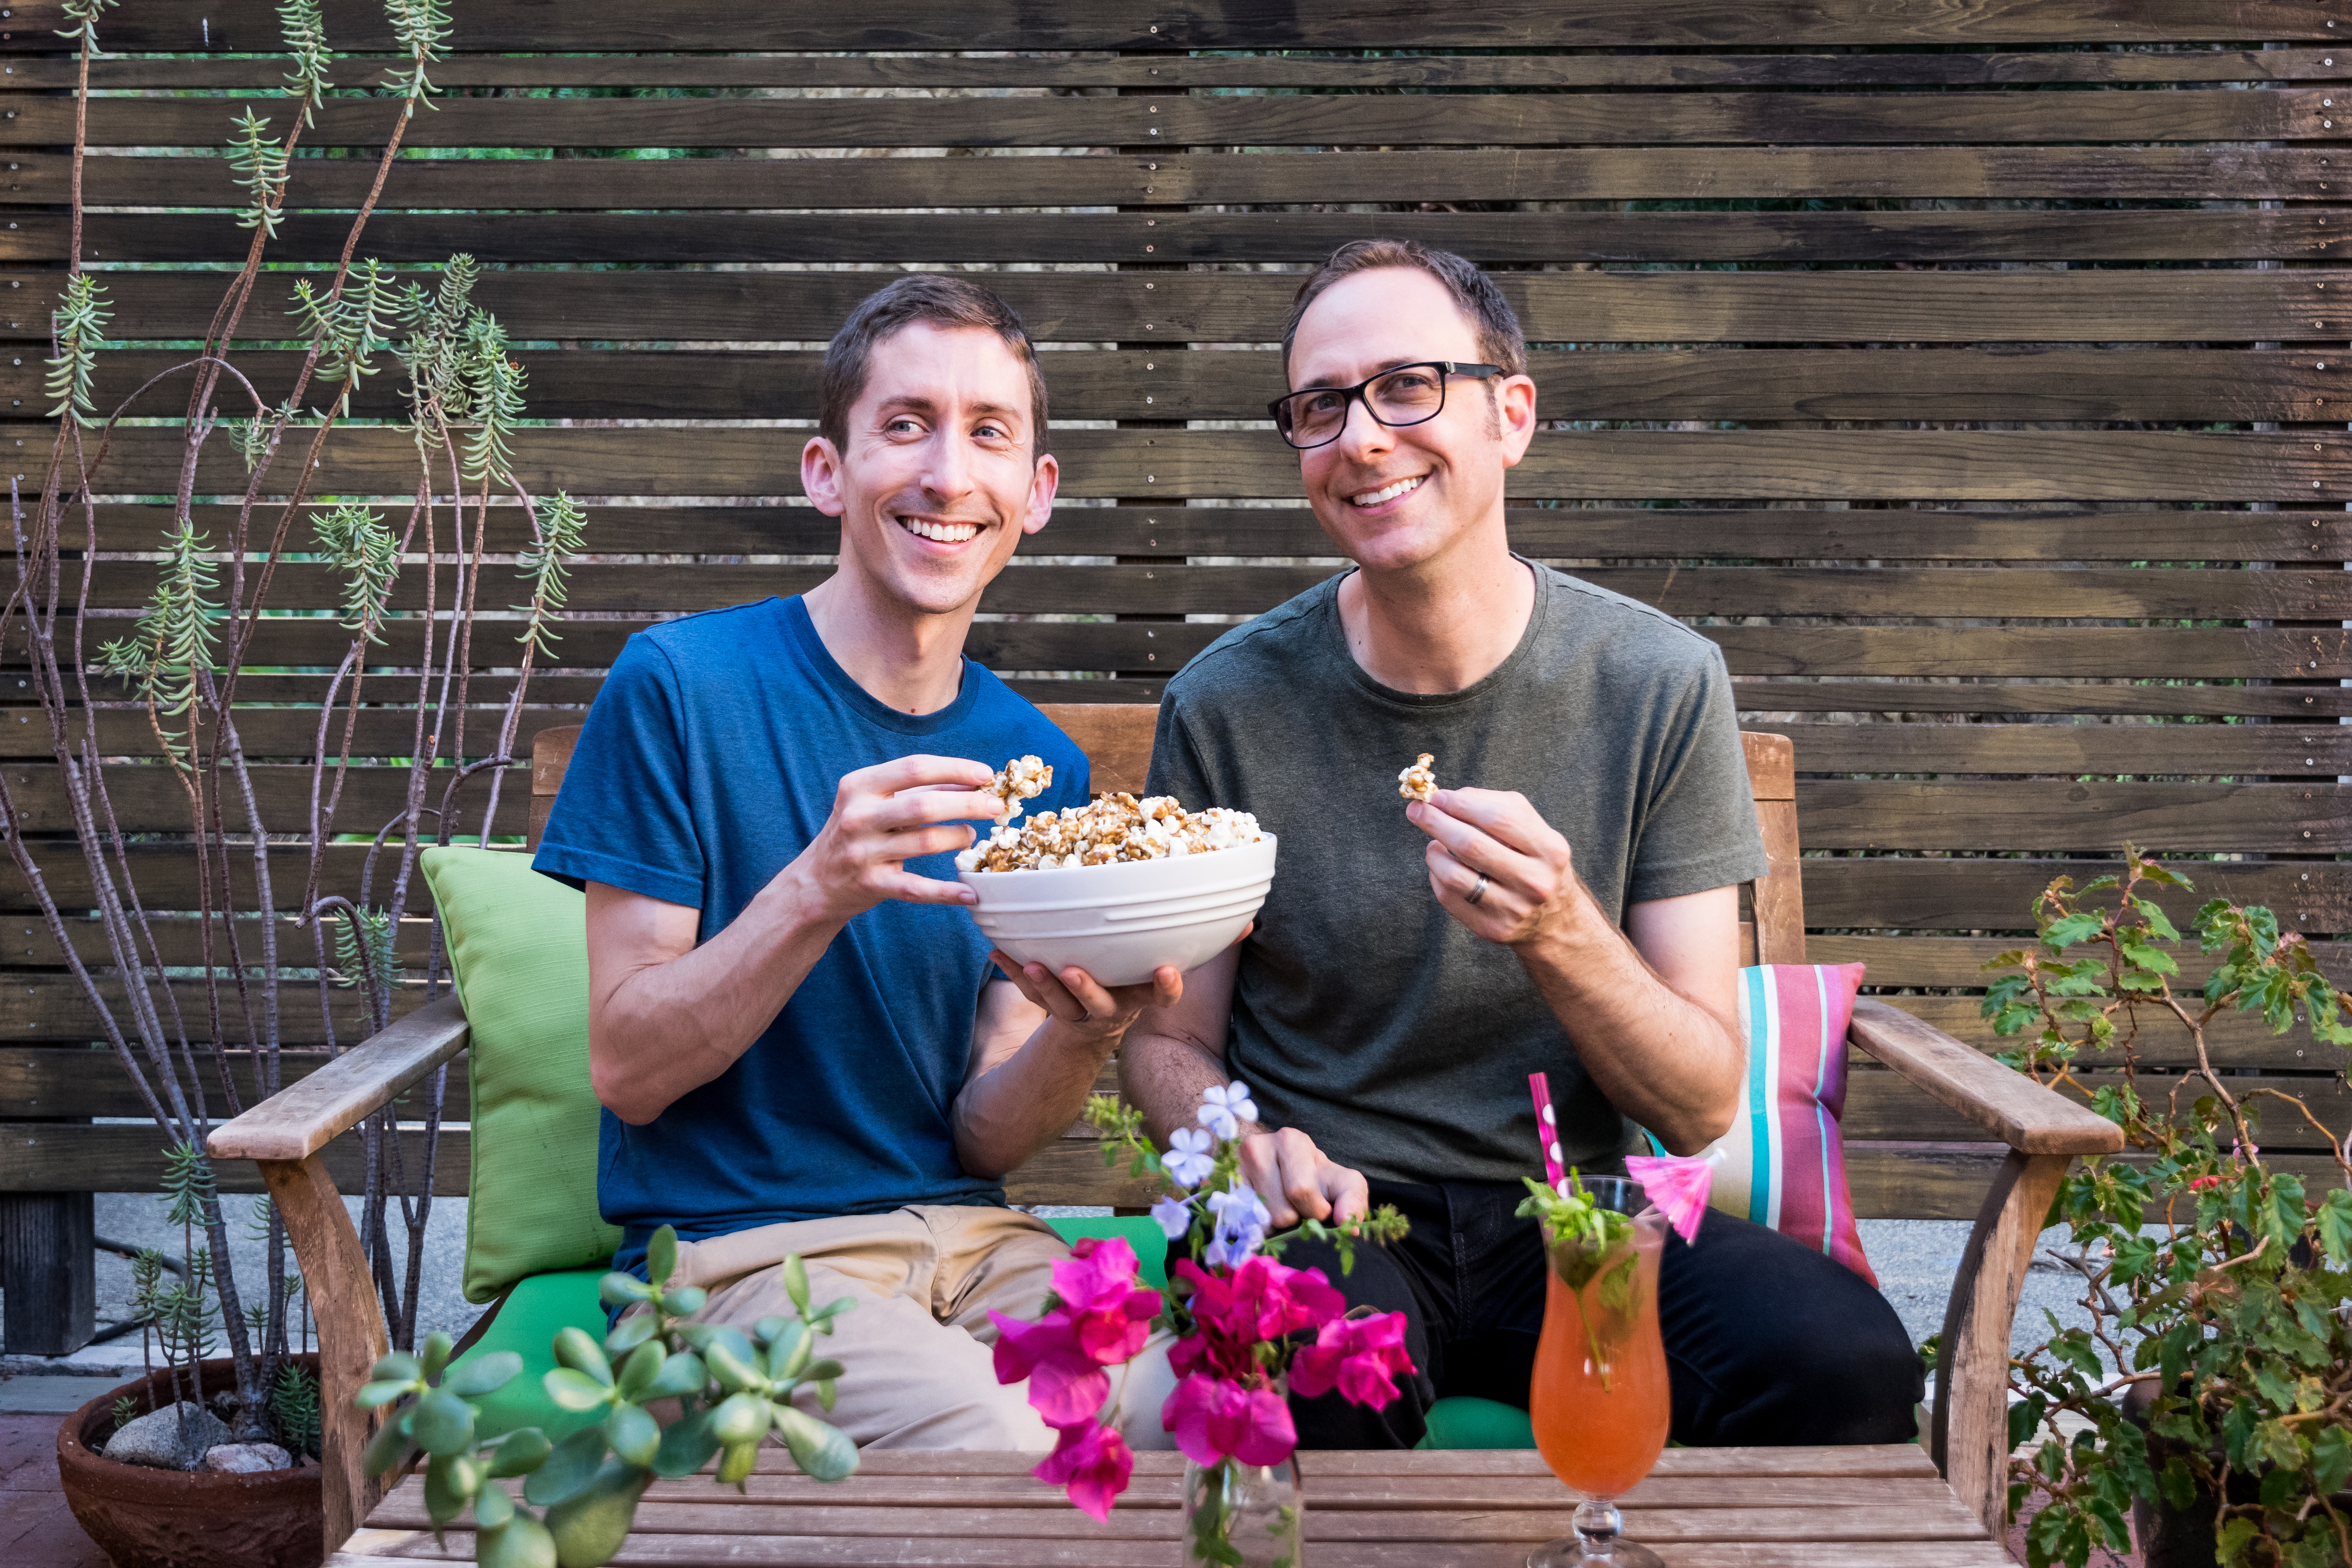 Episode 95: Ryan and Adam the husbands that cook